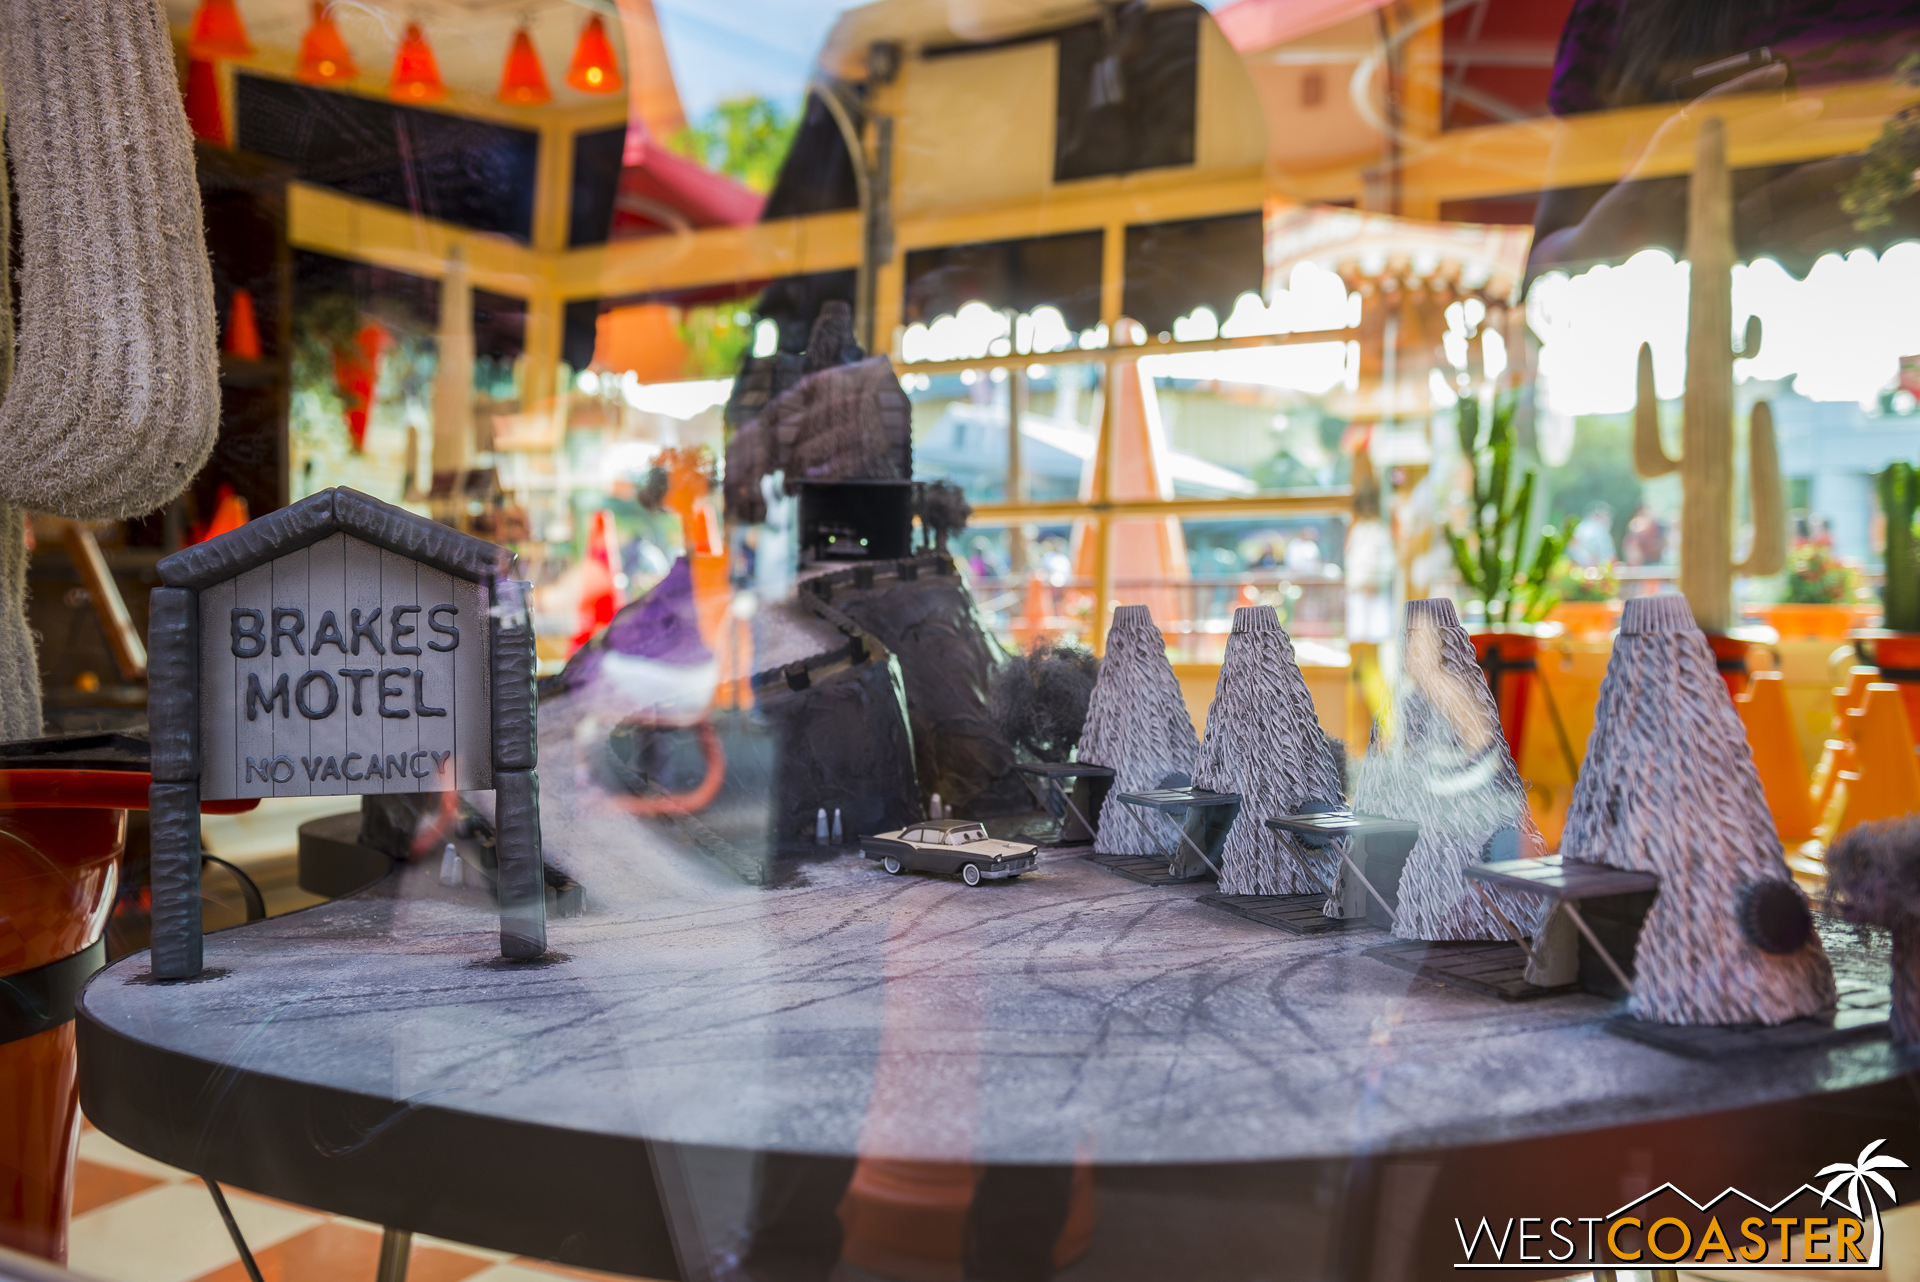 Around back by the Cozy Cone stalls, a special Halloween display could be found inside the Cozy Cone main office.